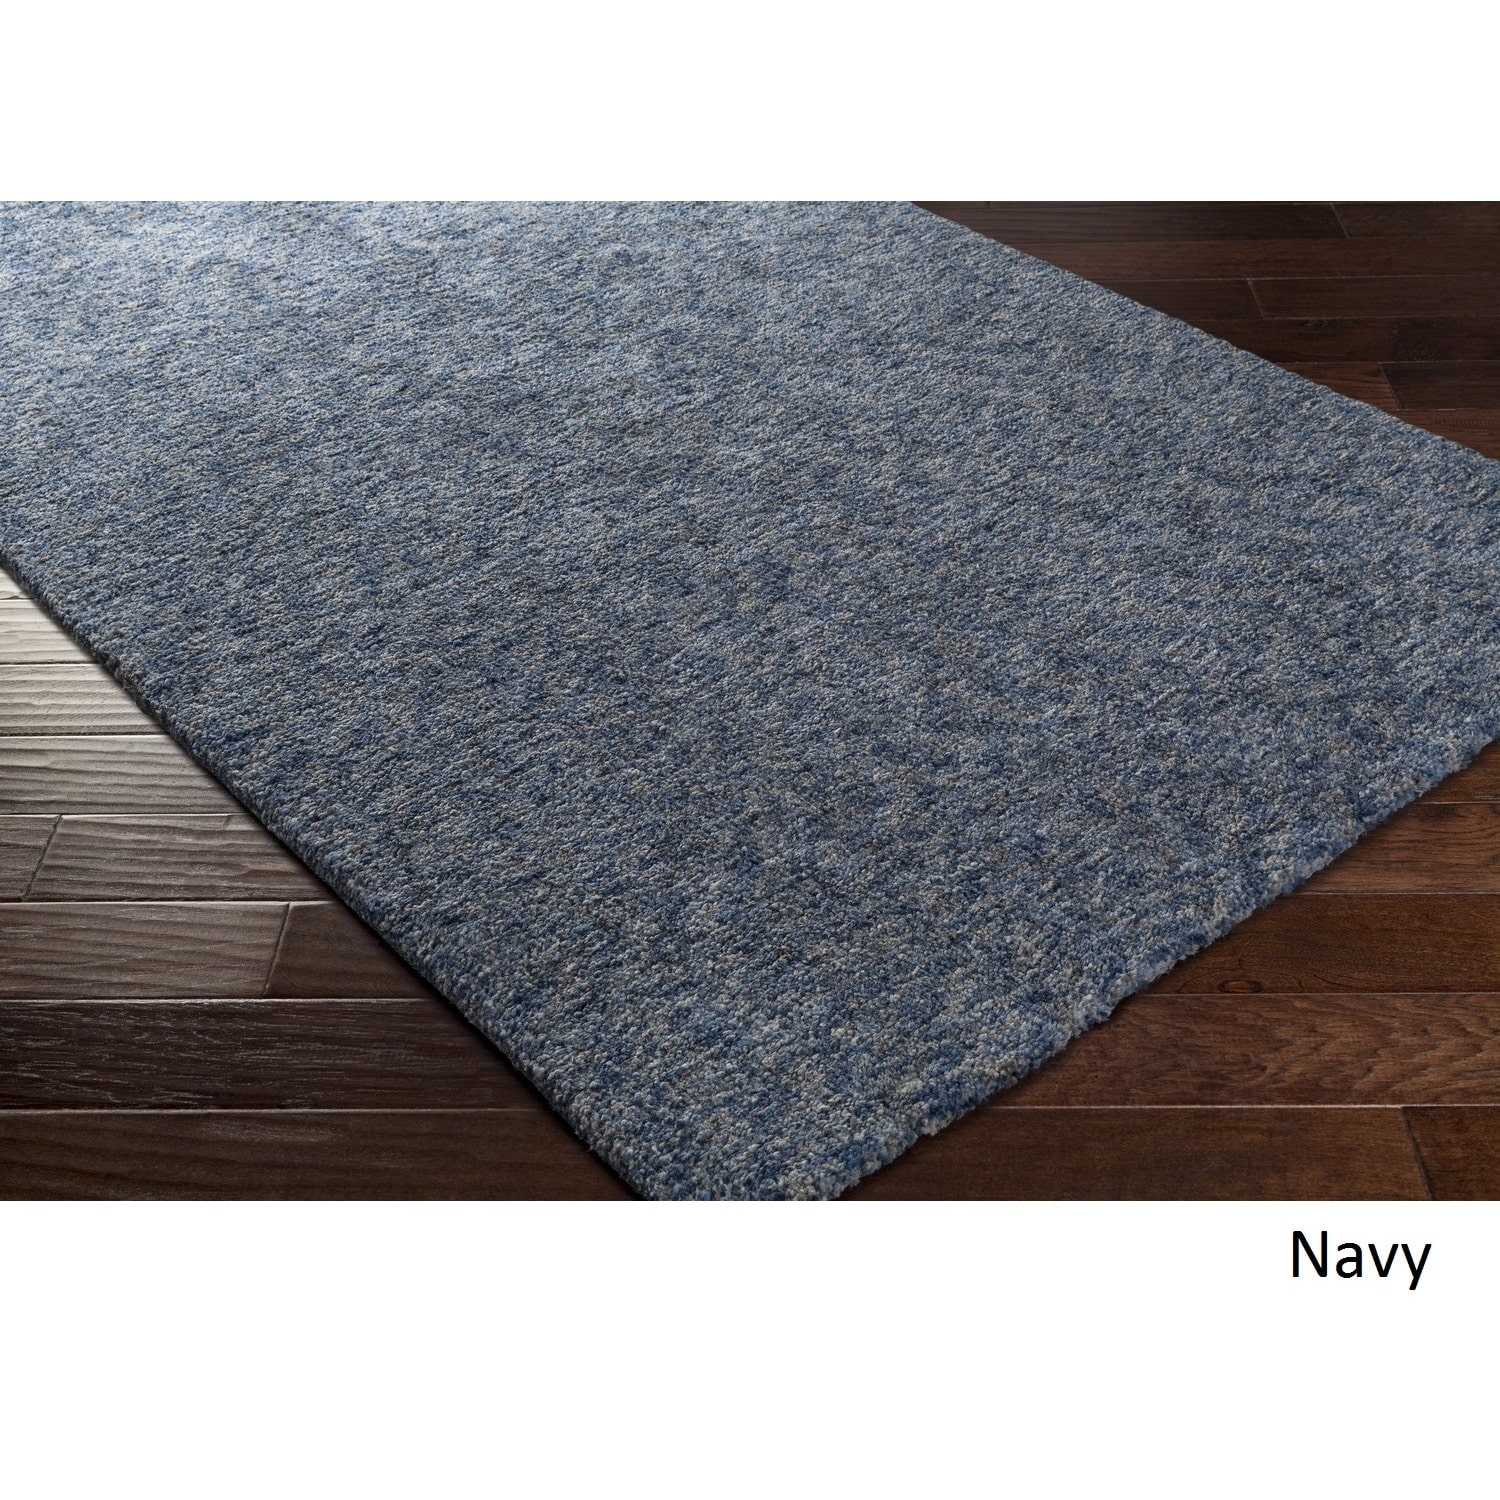 Surya Carpet, Inc. Table Tufted Madre Polyester Rug (5' x 7'6)